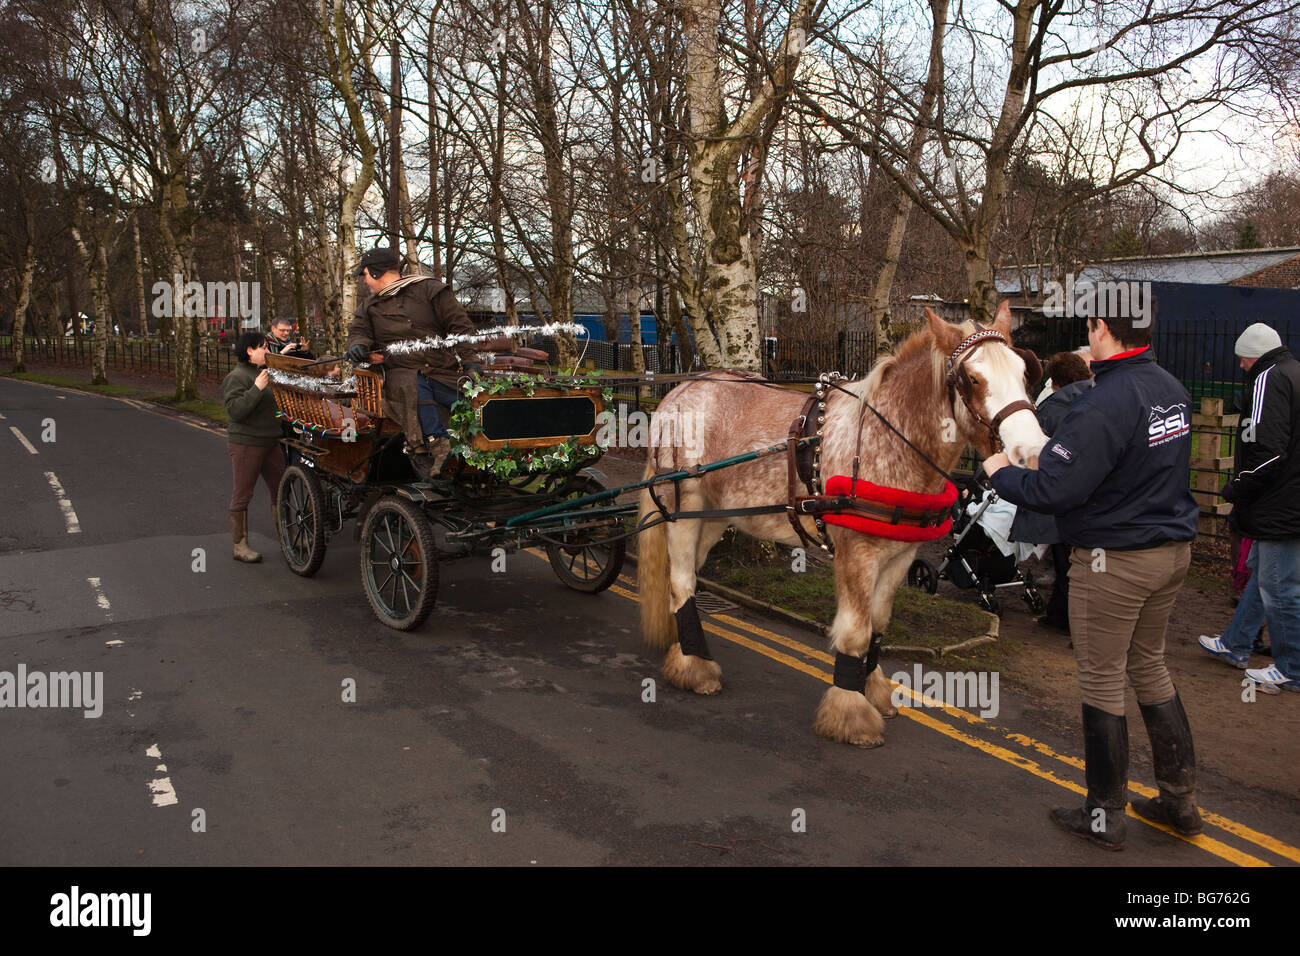 UK, England, Manchester, Wythenshawe Park festively decorated pony and trap giving Christmas rides - Stock Image